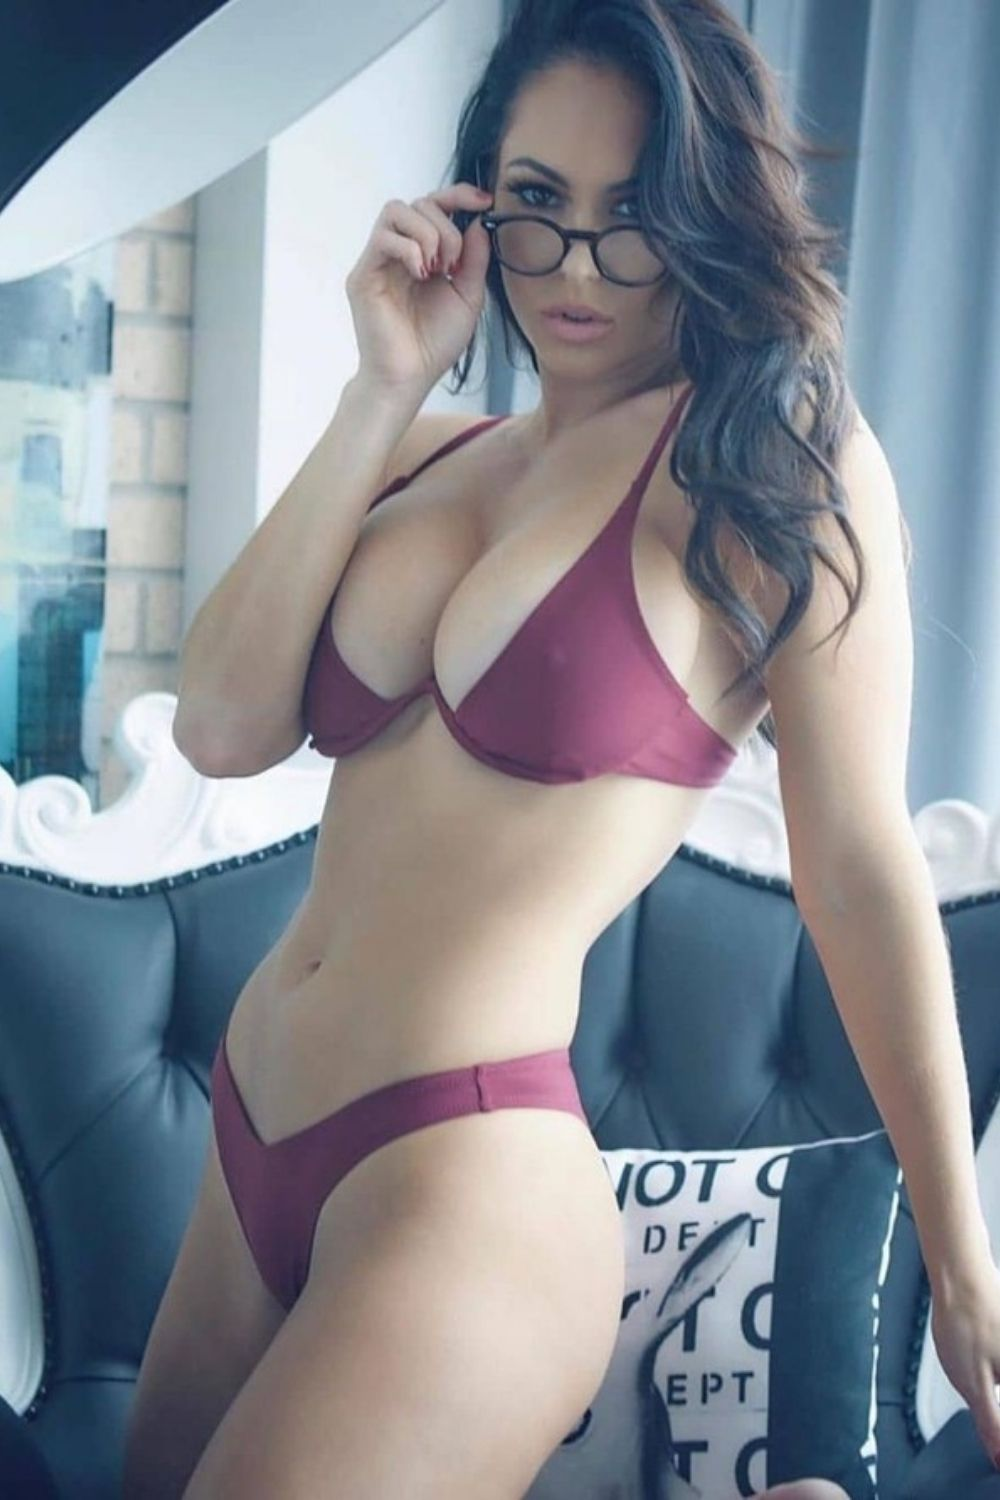 Swimsuit Hottest In Model Nude World Gif